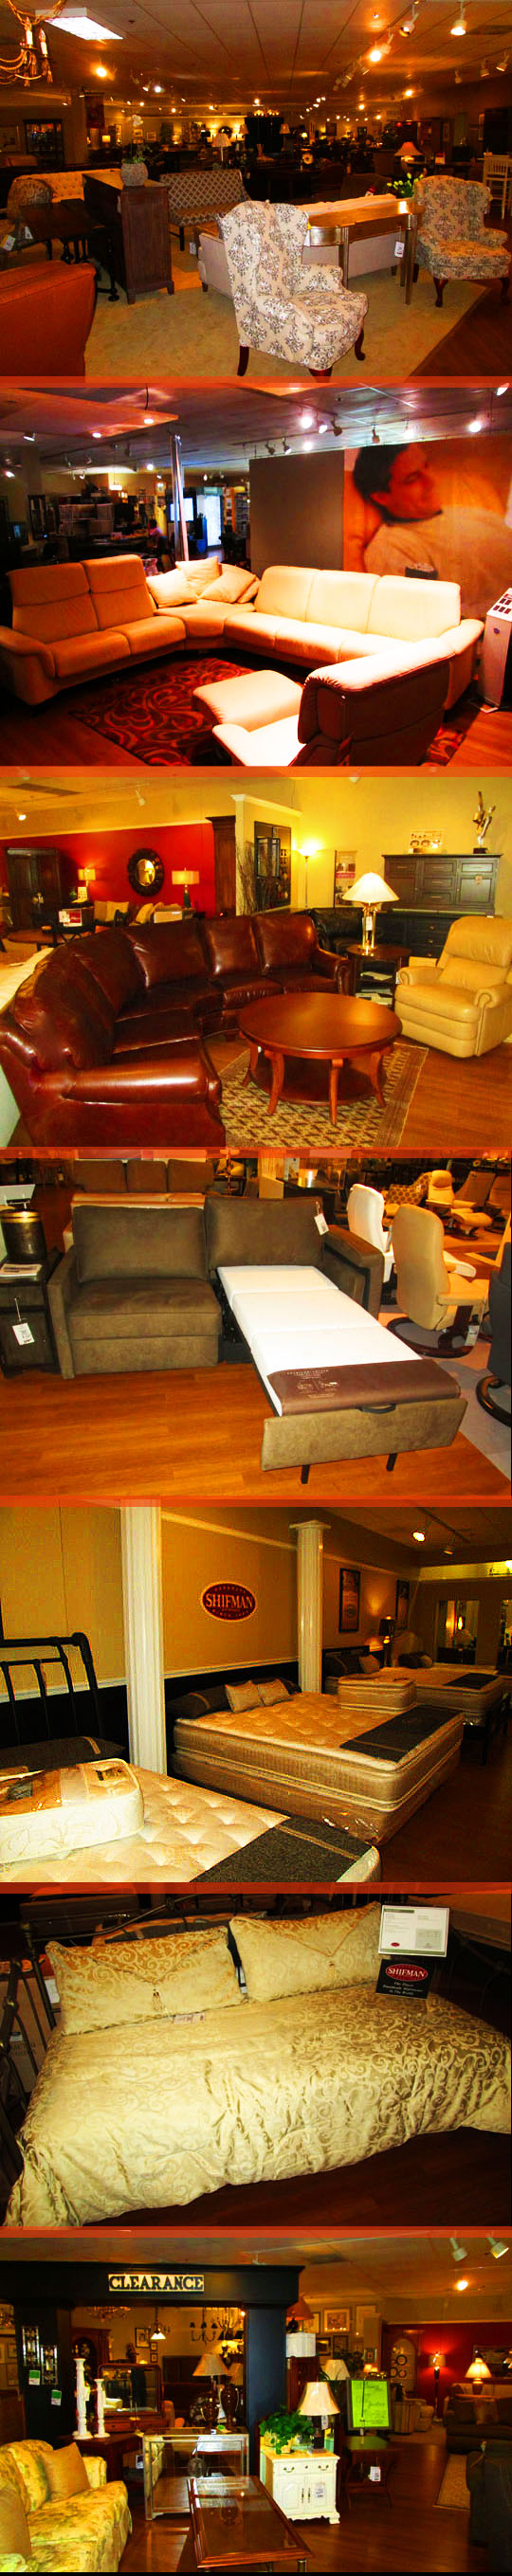 Shop Hop Lippmann S Furniture Interiors Last Peoria Owned Family Furniture Store Standing